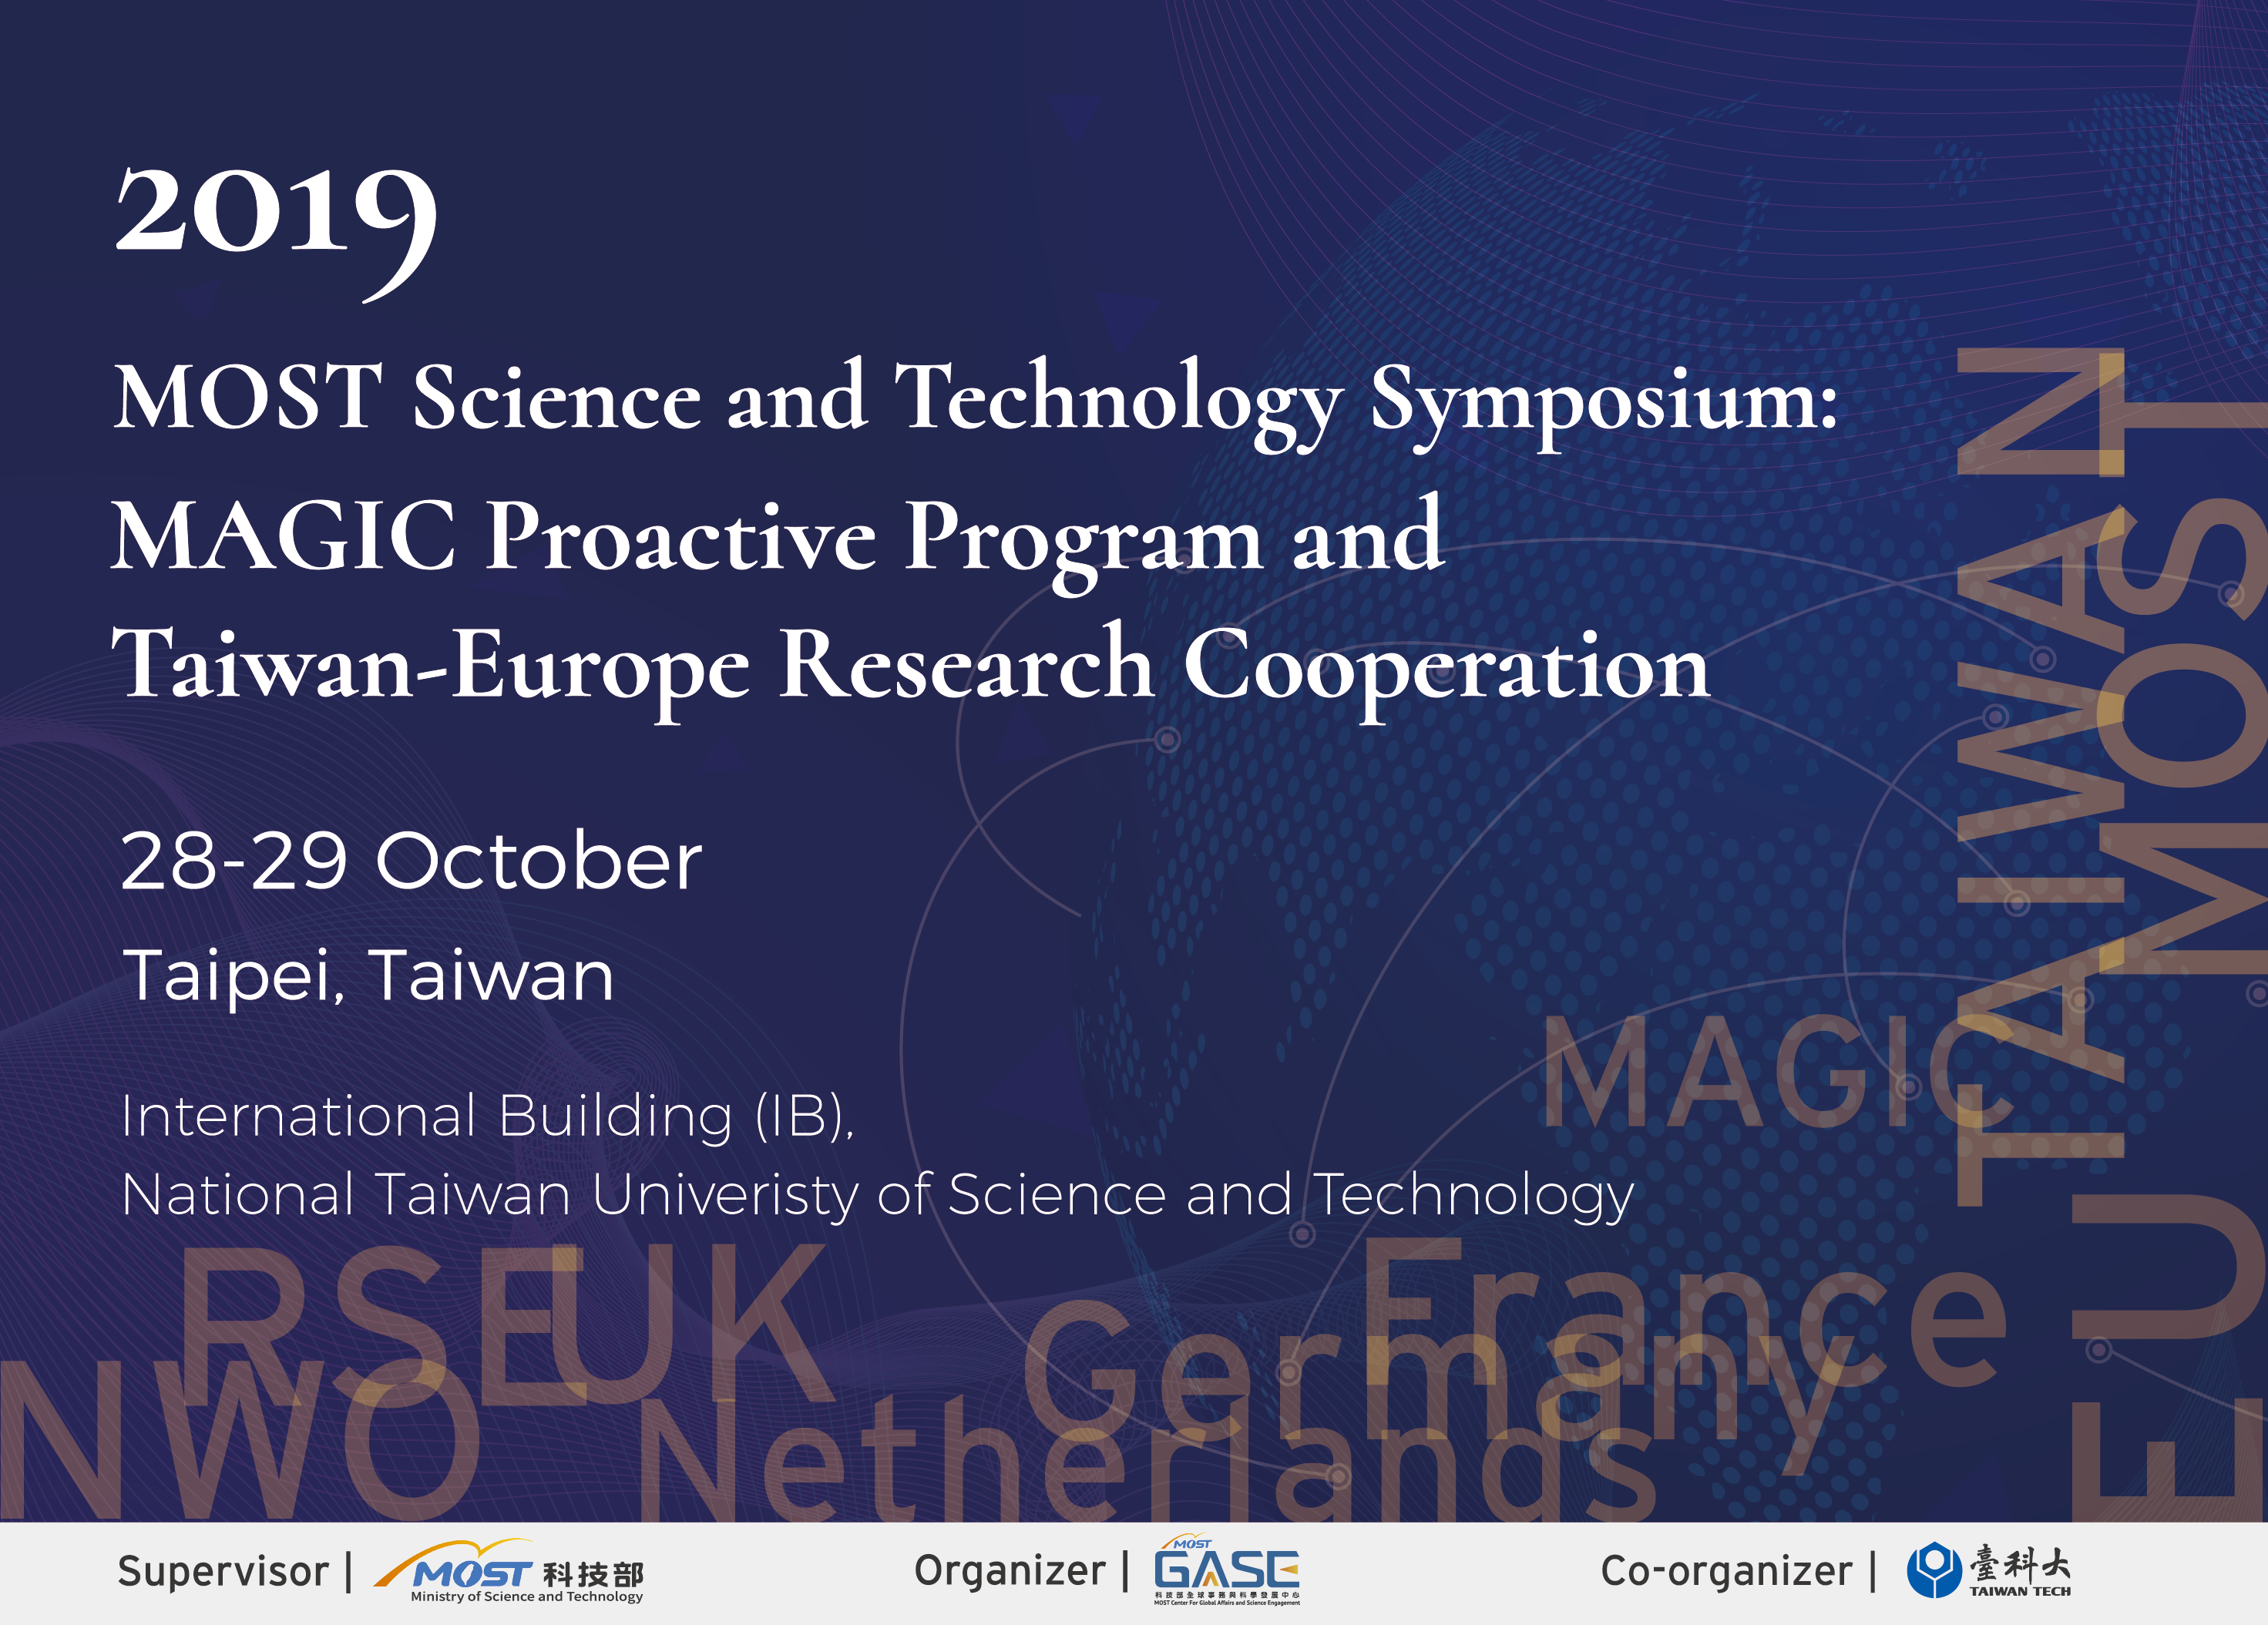 2019 MOST Science and Technology Symposium: MAGIC Proactive Program and Taiwan-Europe Research Cooperation